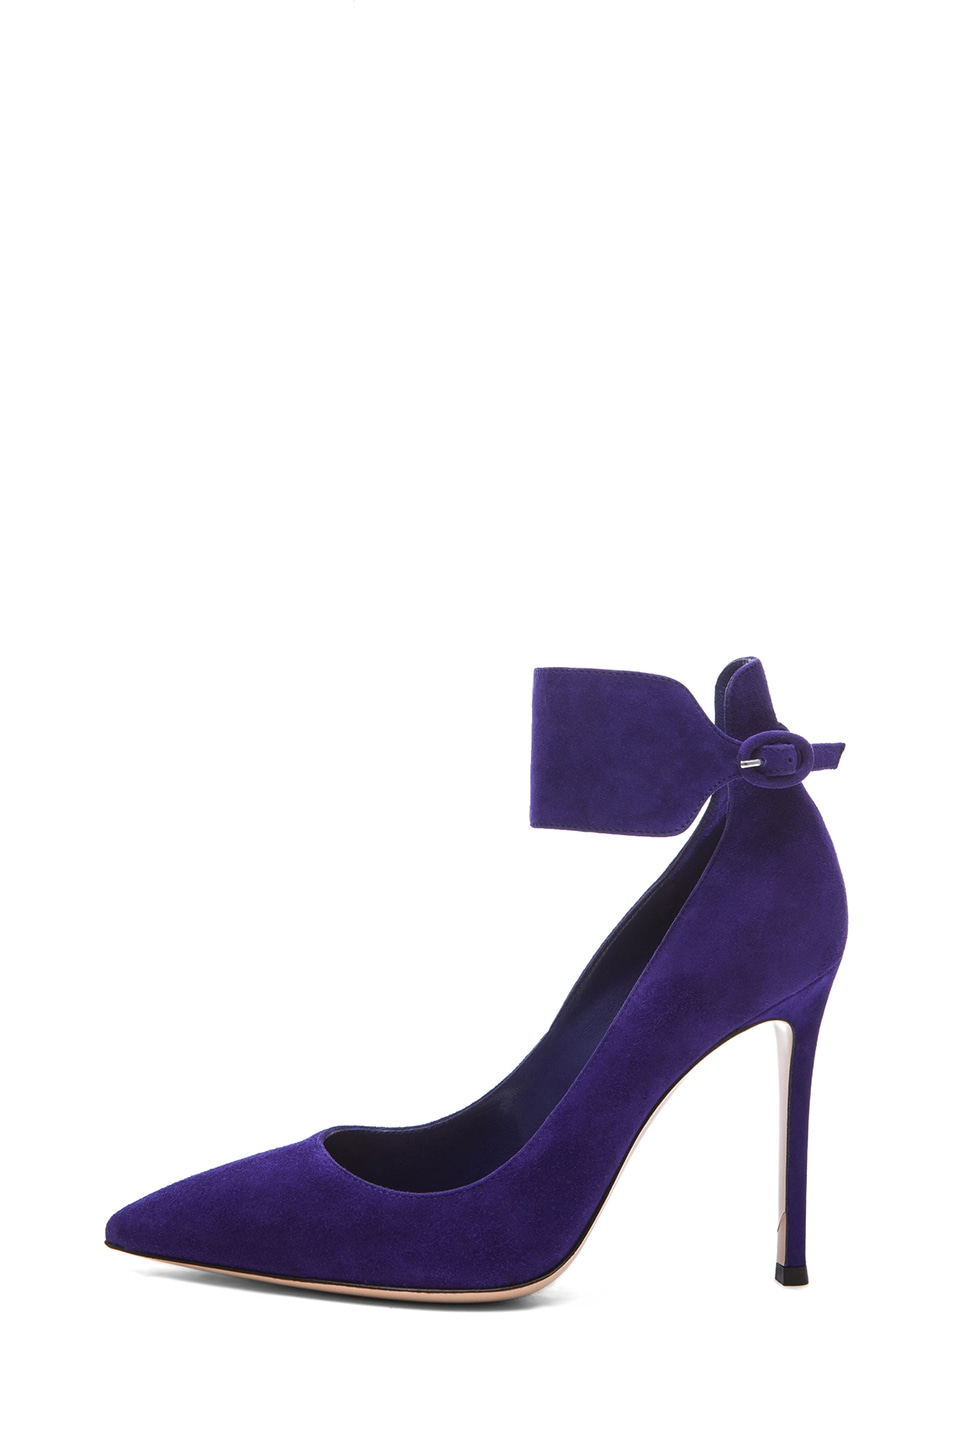 Image 1 of Gianvito Rossi Suede Ankle Strap Pumps in Indigo